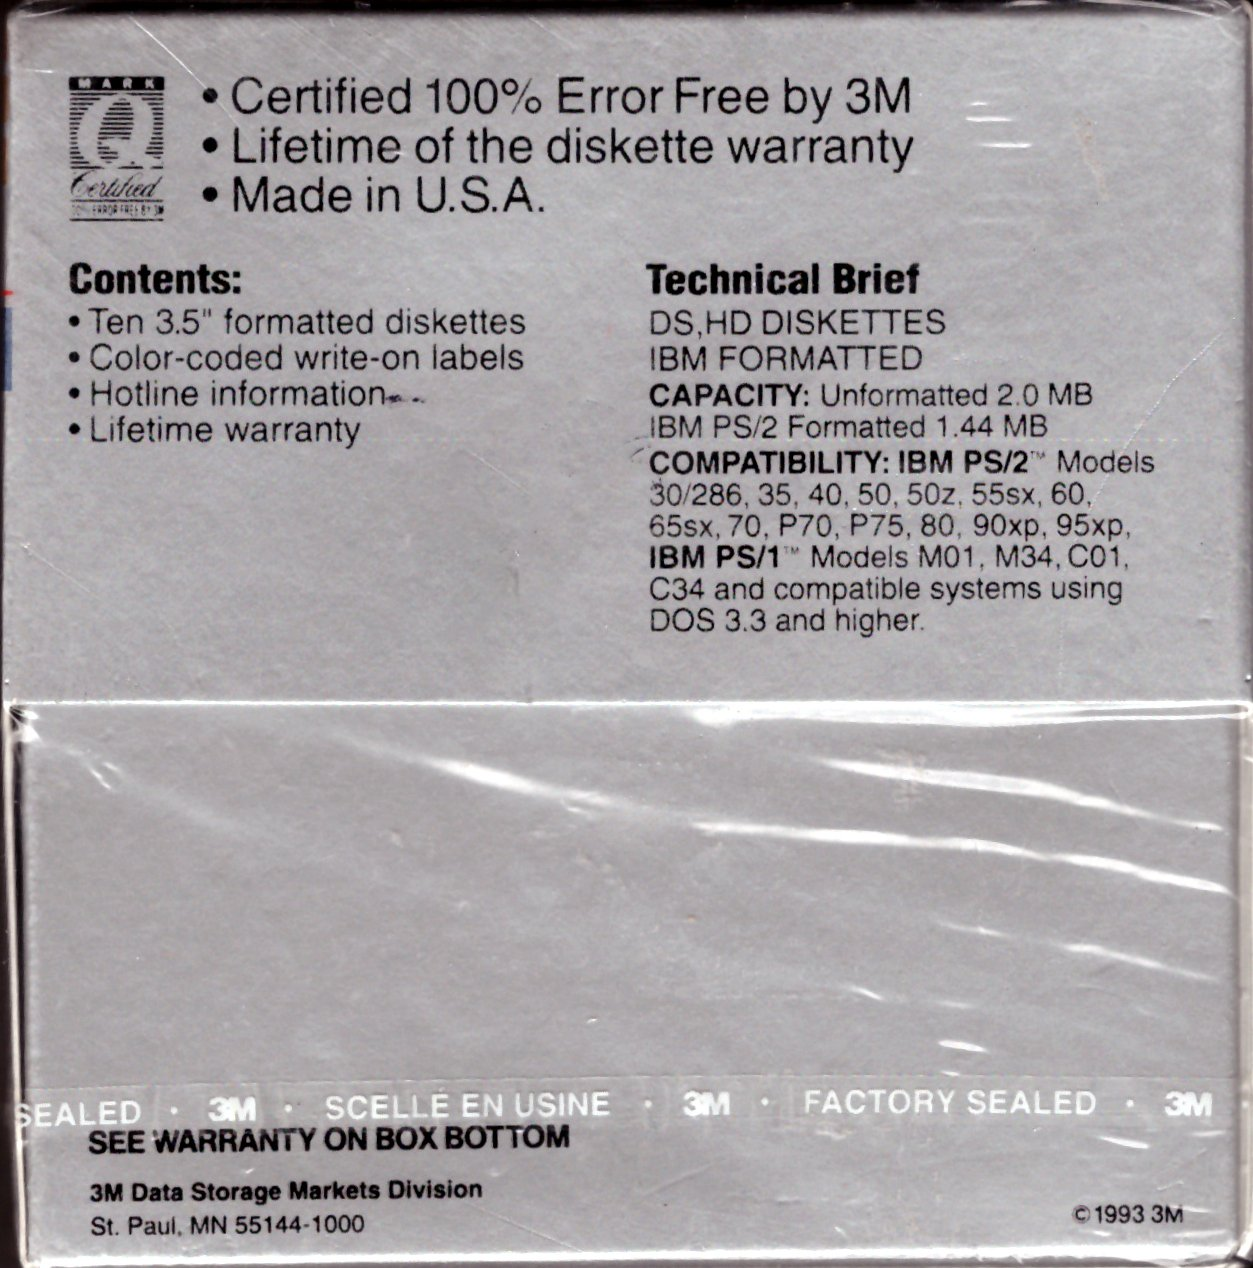 """3M DS,HD 11 Double Sided High Density IBM-Formatted 3.5"""" Diskettes"""